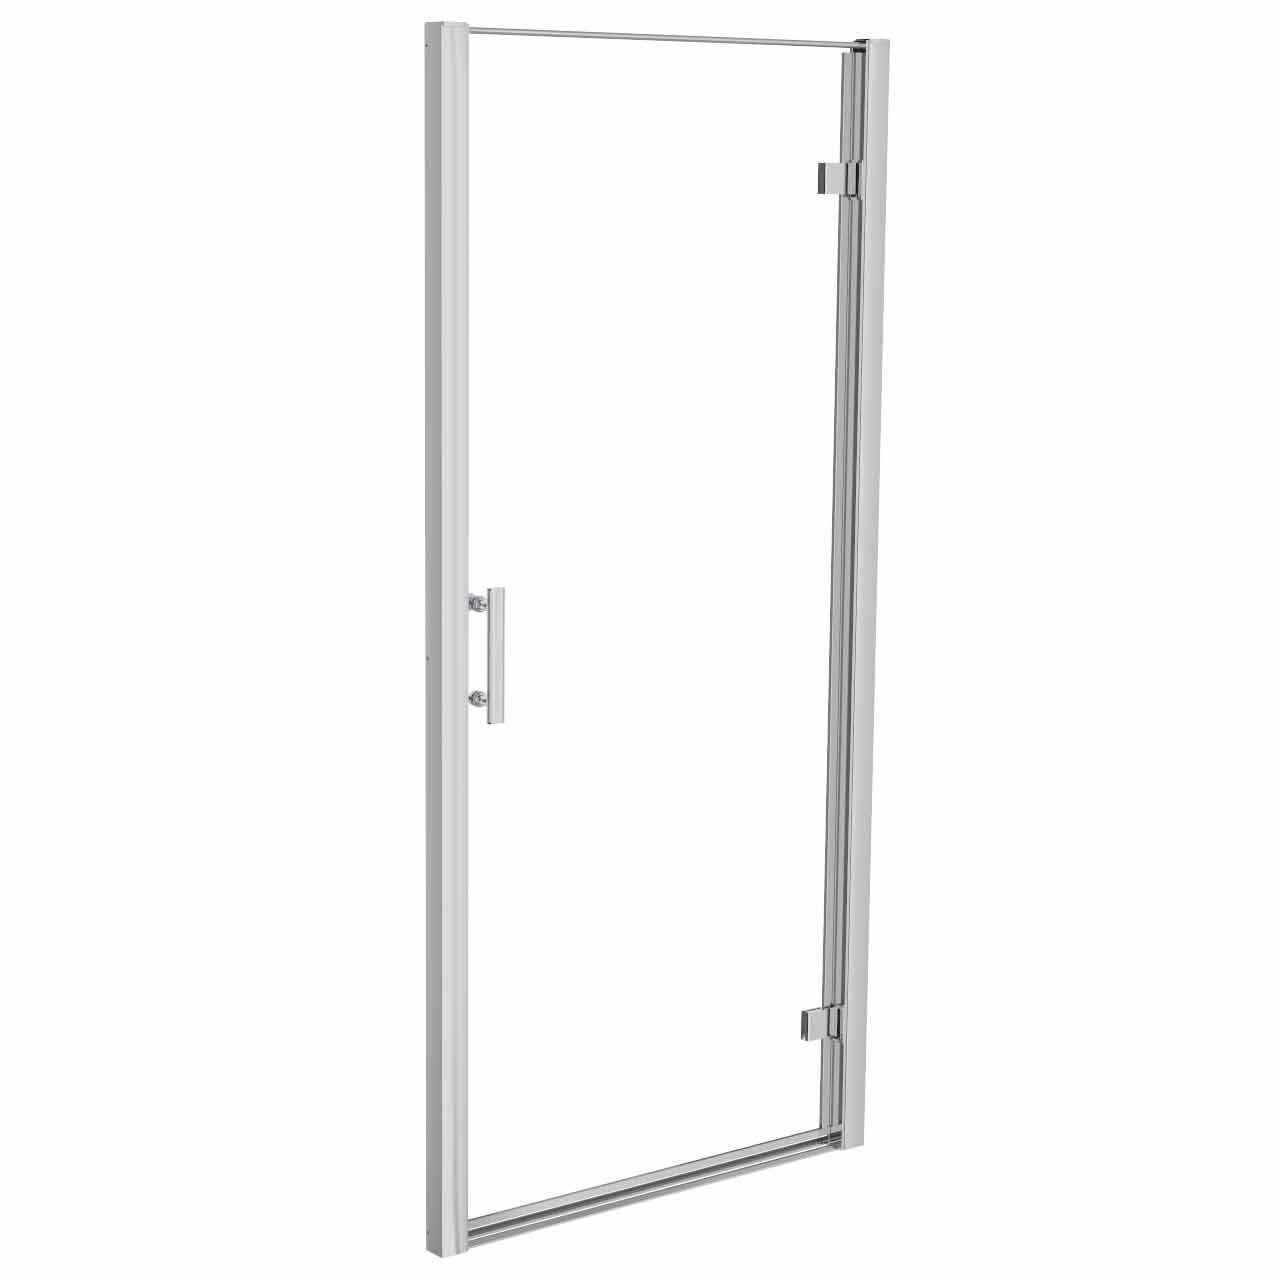 Series 6 900mm x 900mm Hinged Door Shower Enclosure